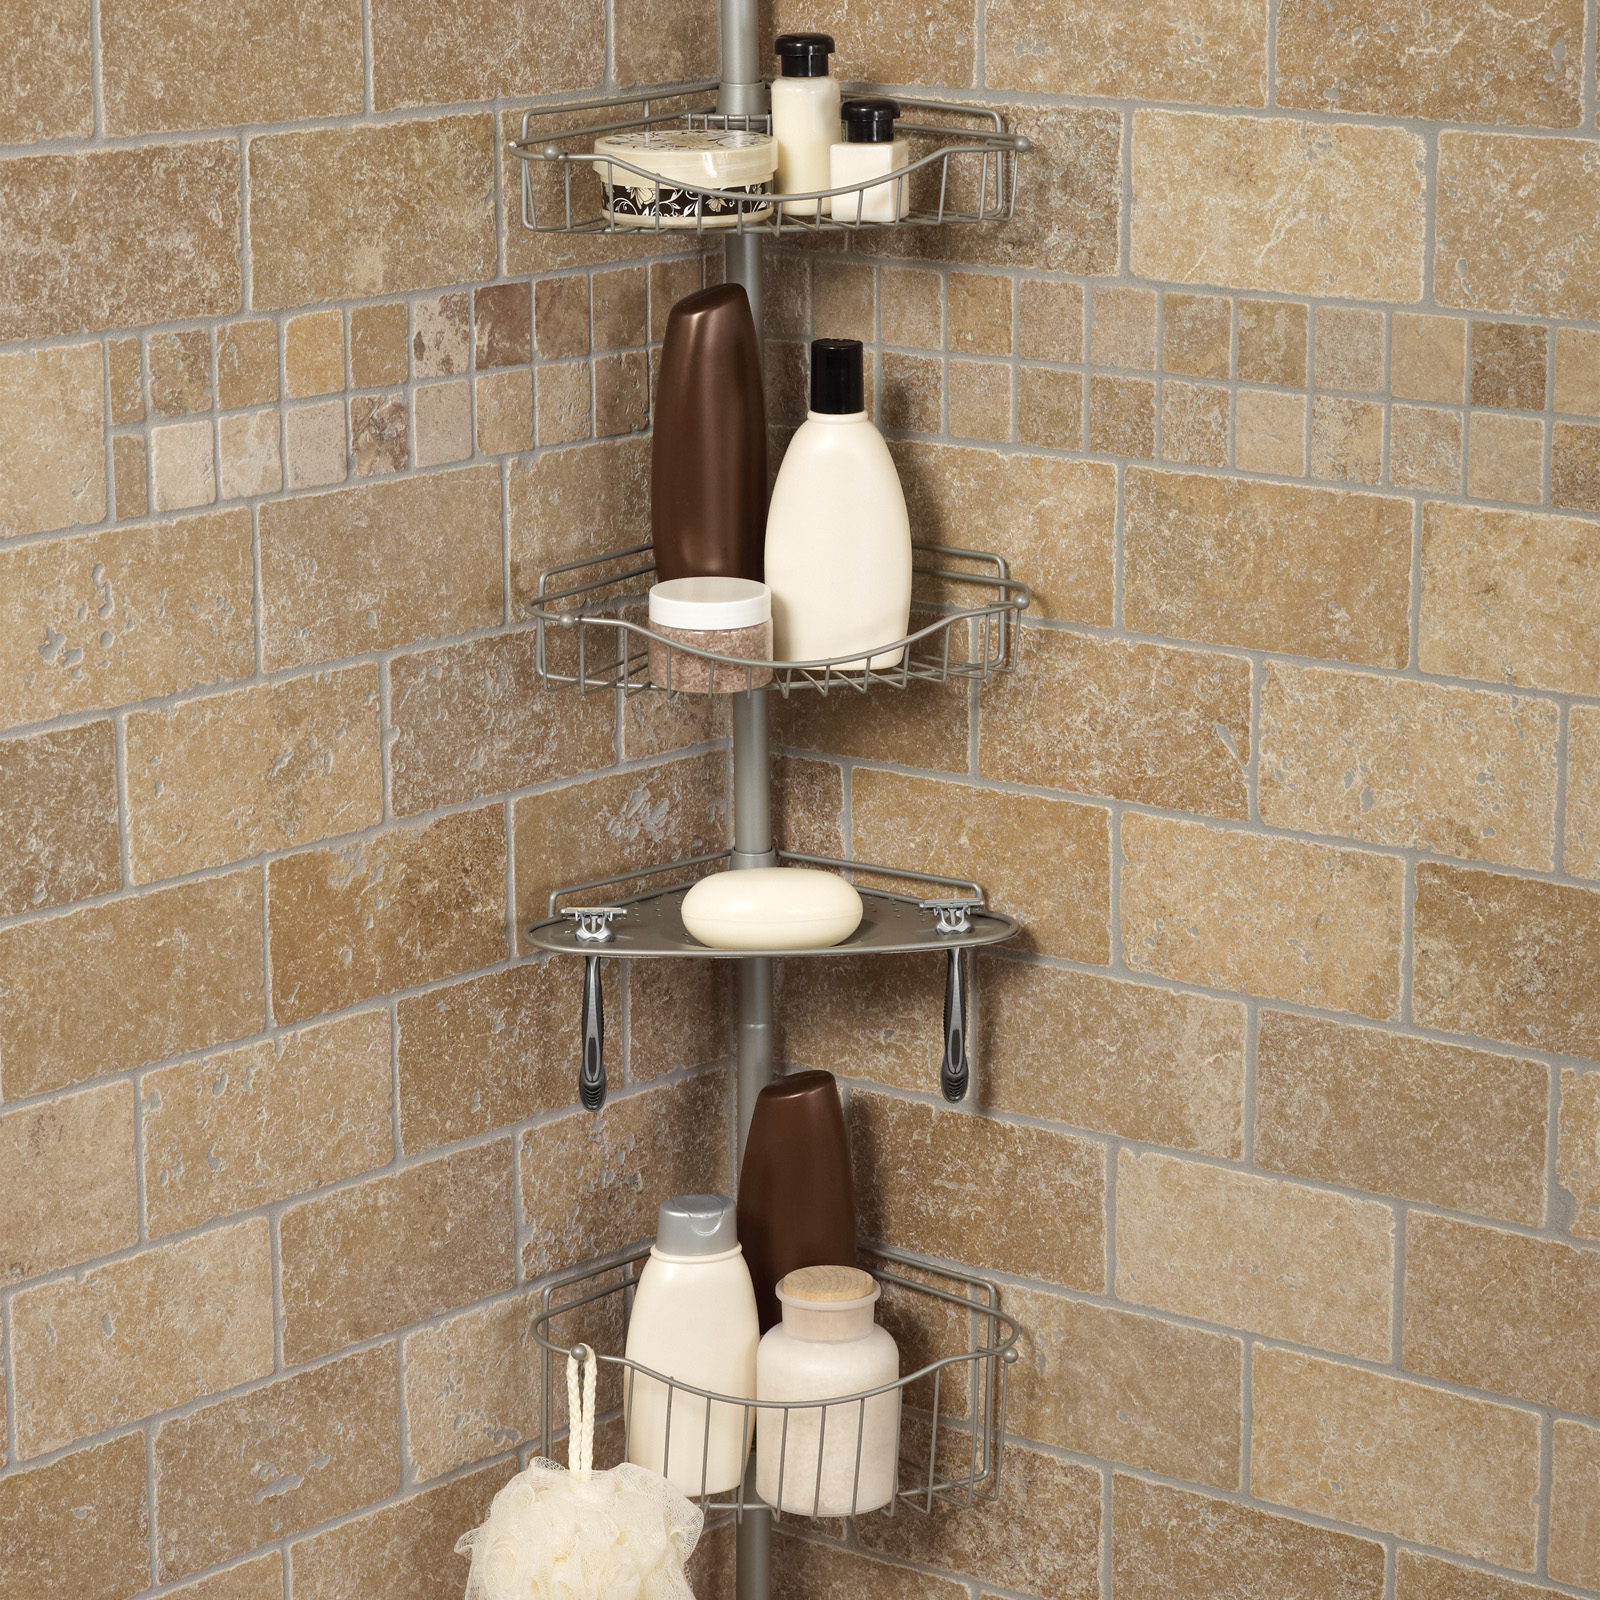 shower bath caddies hayneedle rh hayneedle com Tension Pole Shower Caddy Walmart Tension Pole Shower Caddy Walmart